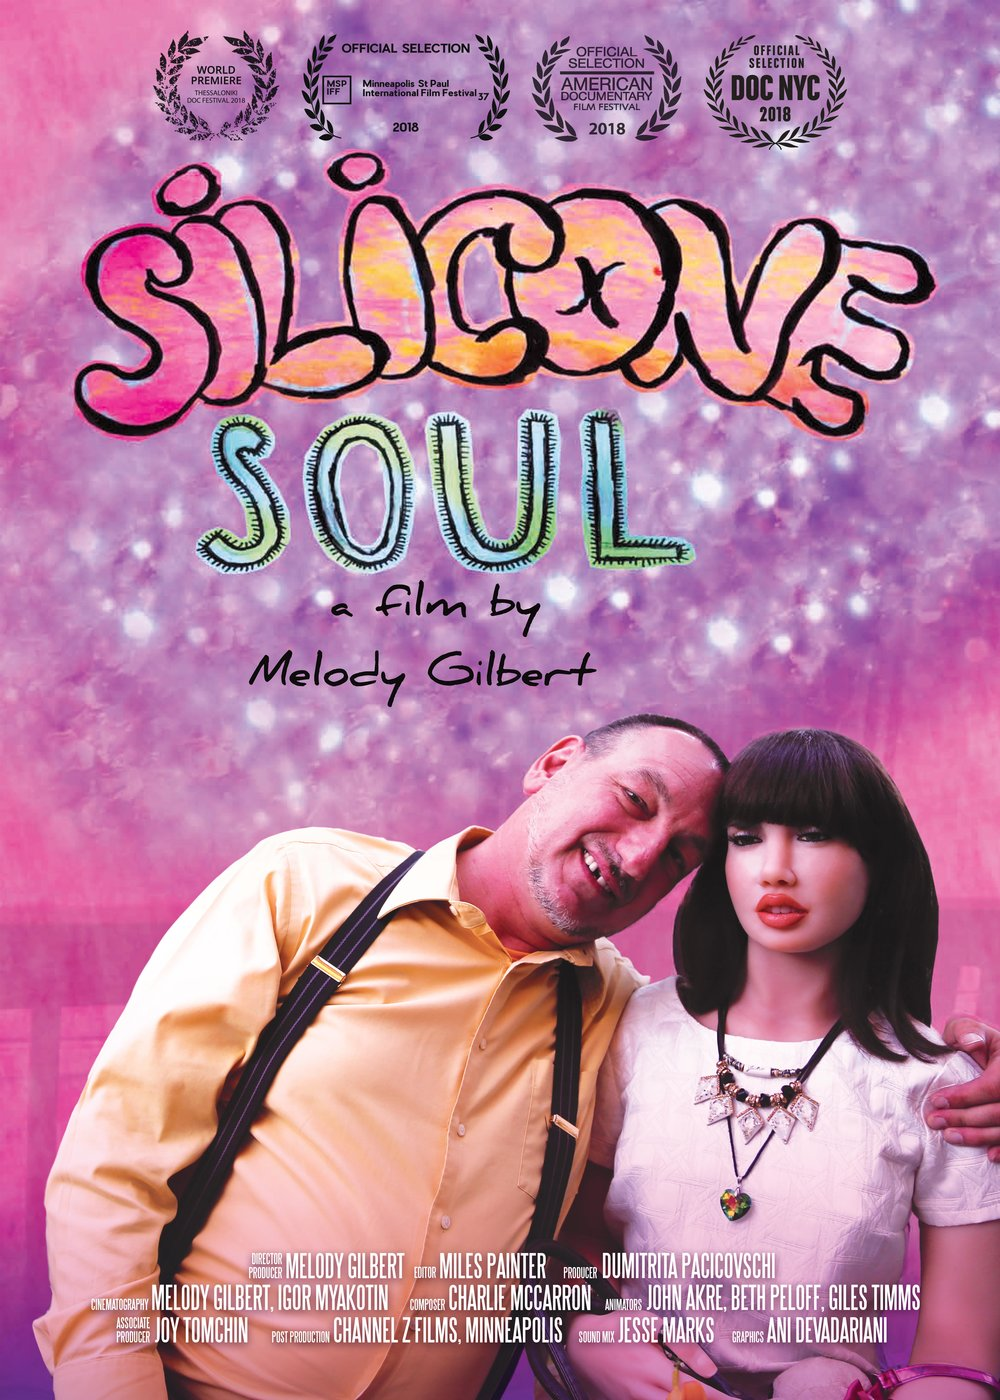 Silicone Soul - 2018, USA, 71 min, in EnglishSilicone Soul explores the emotional connection some people have to their lifelike synthetic companions and what that means for the future of human relationships. Ultimately, this is a film about love, loneliness, secrets and, perhaps, acceptance. The bonds shown are diverse and layered: from romantic relationships, to friendships, to a recreation of the love between mother and child. Silicone Soul does not allow for its subjects to be easily labeled or judged. Instead, the film is a collection of resoundingly human stories that reflect universal themes—the desire for love, compassion and communication. Who are we to judge who…or what…people choose to love?  More about the film here.